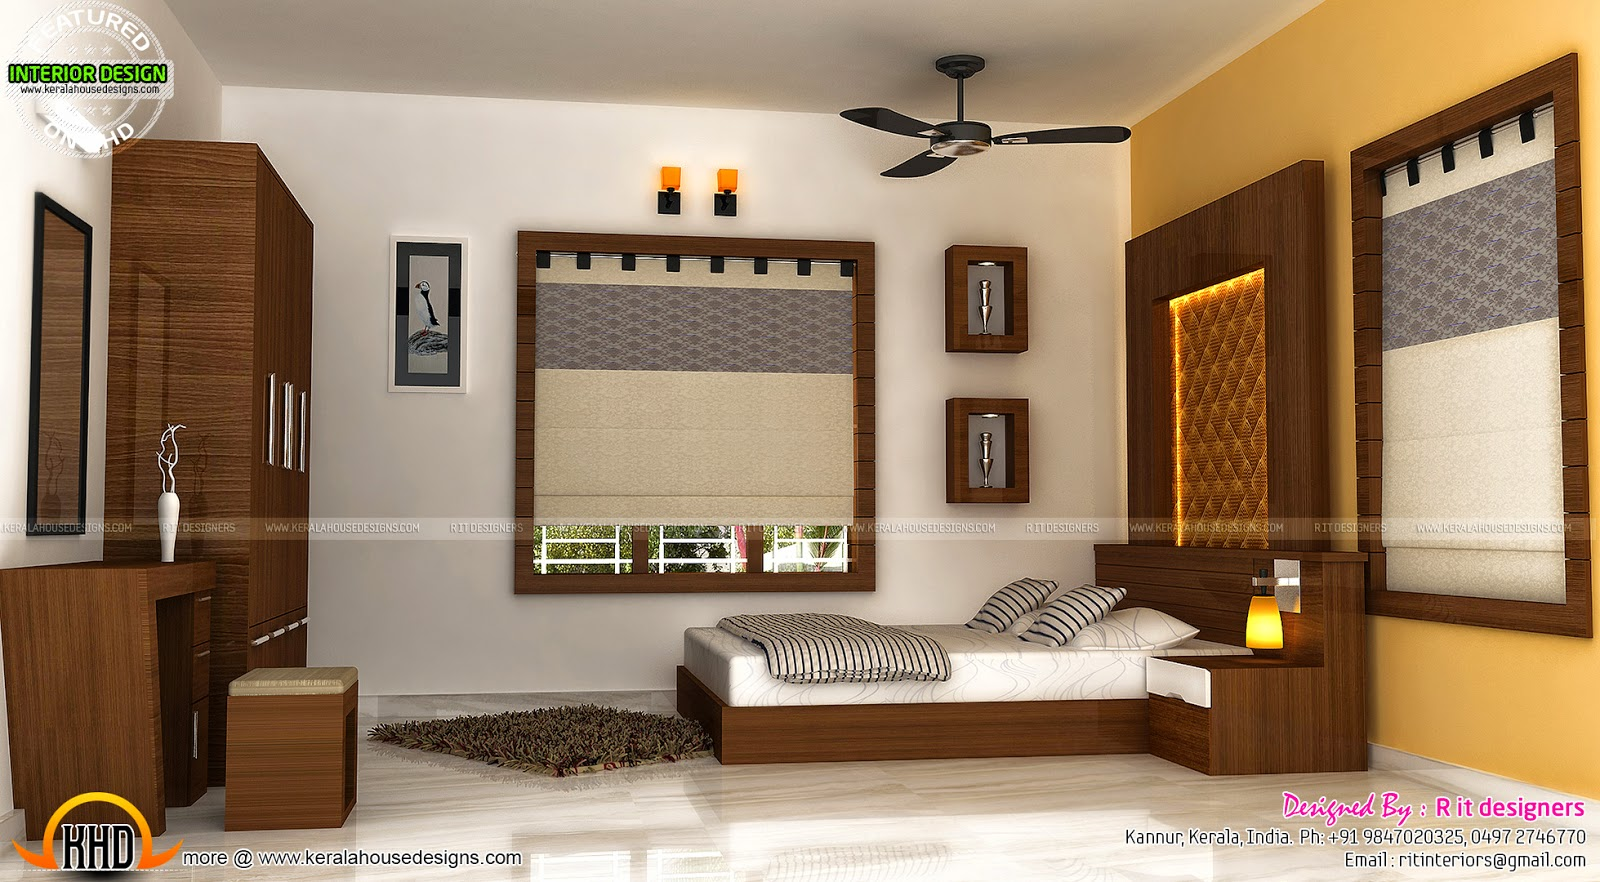 Staircase bedroom dining interiors kerala home design for Picture of interior designs of house